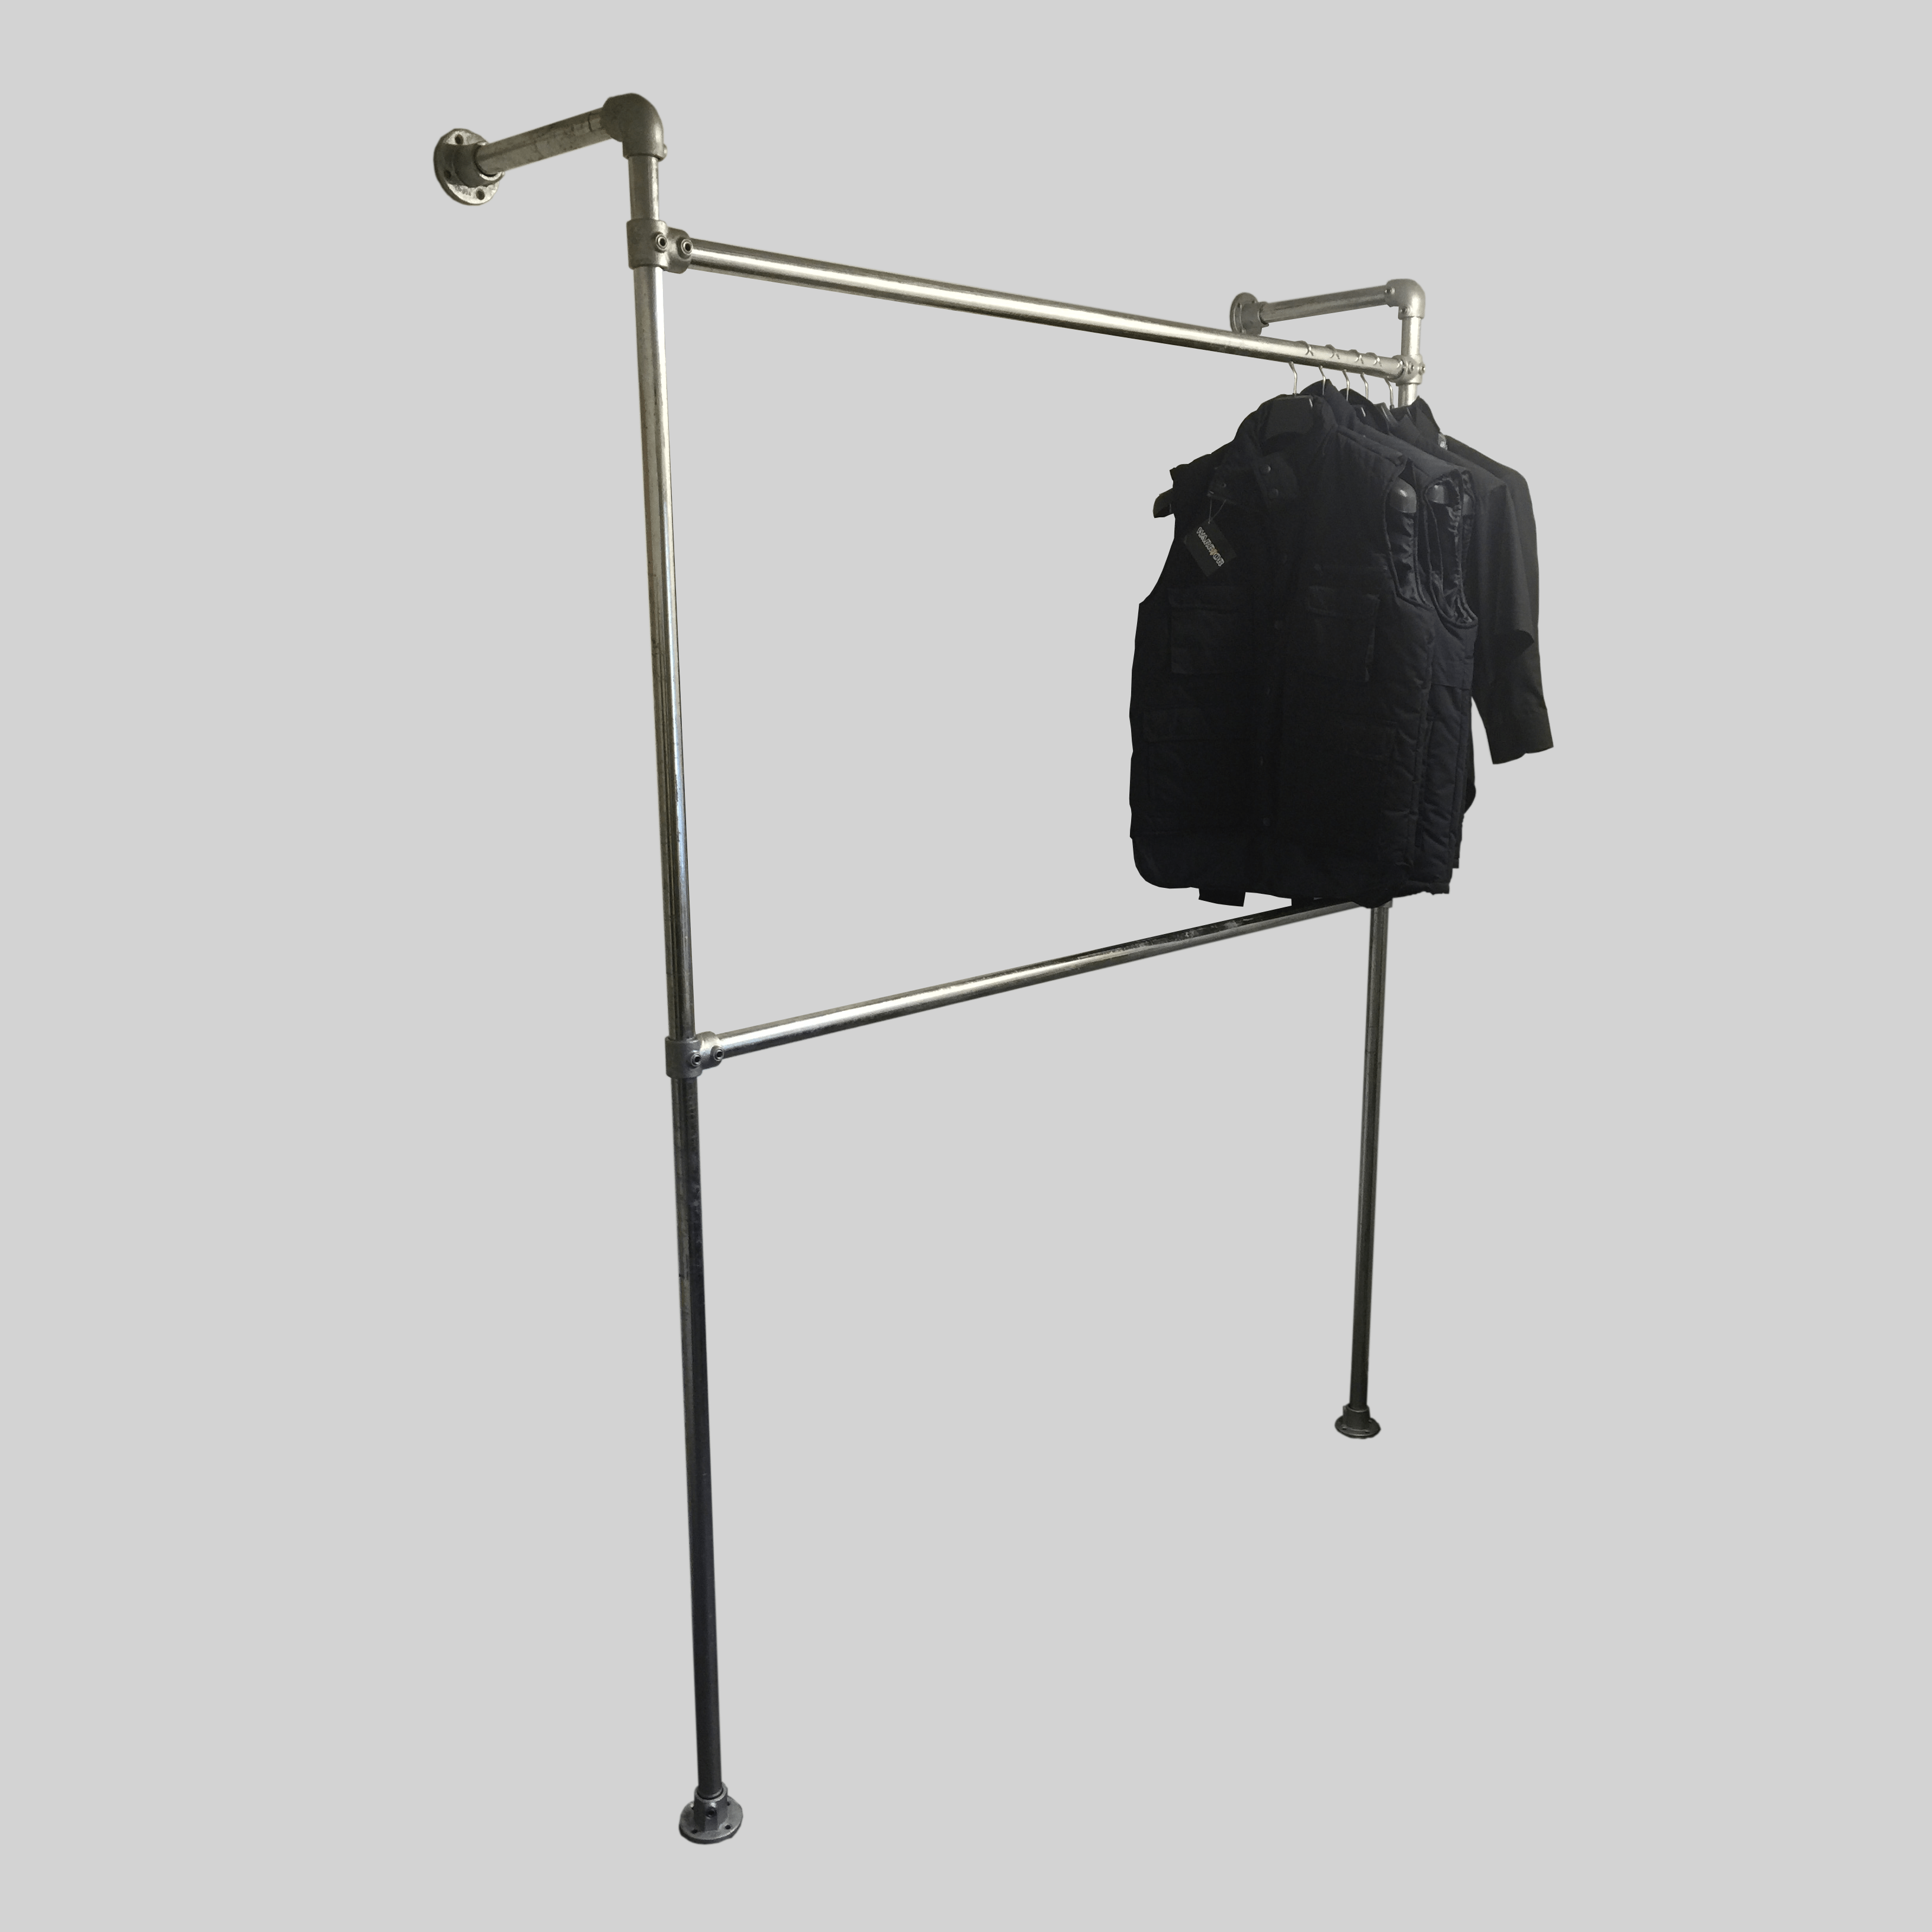 ideas design garment free clothes metal popular exciting standing chrome rack with target